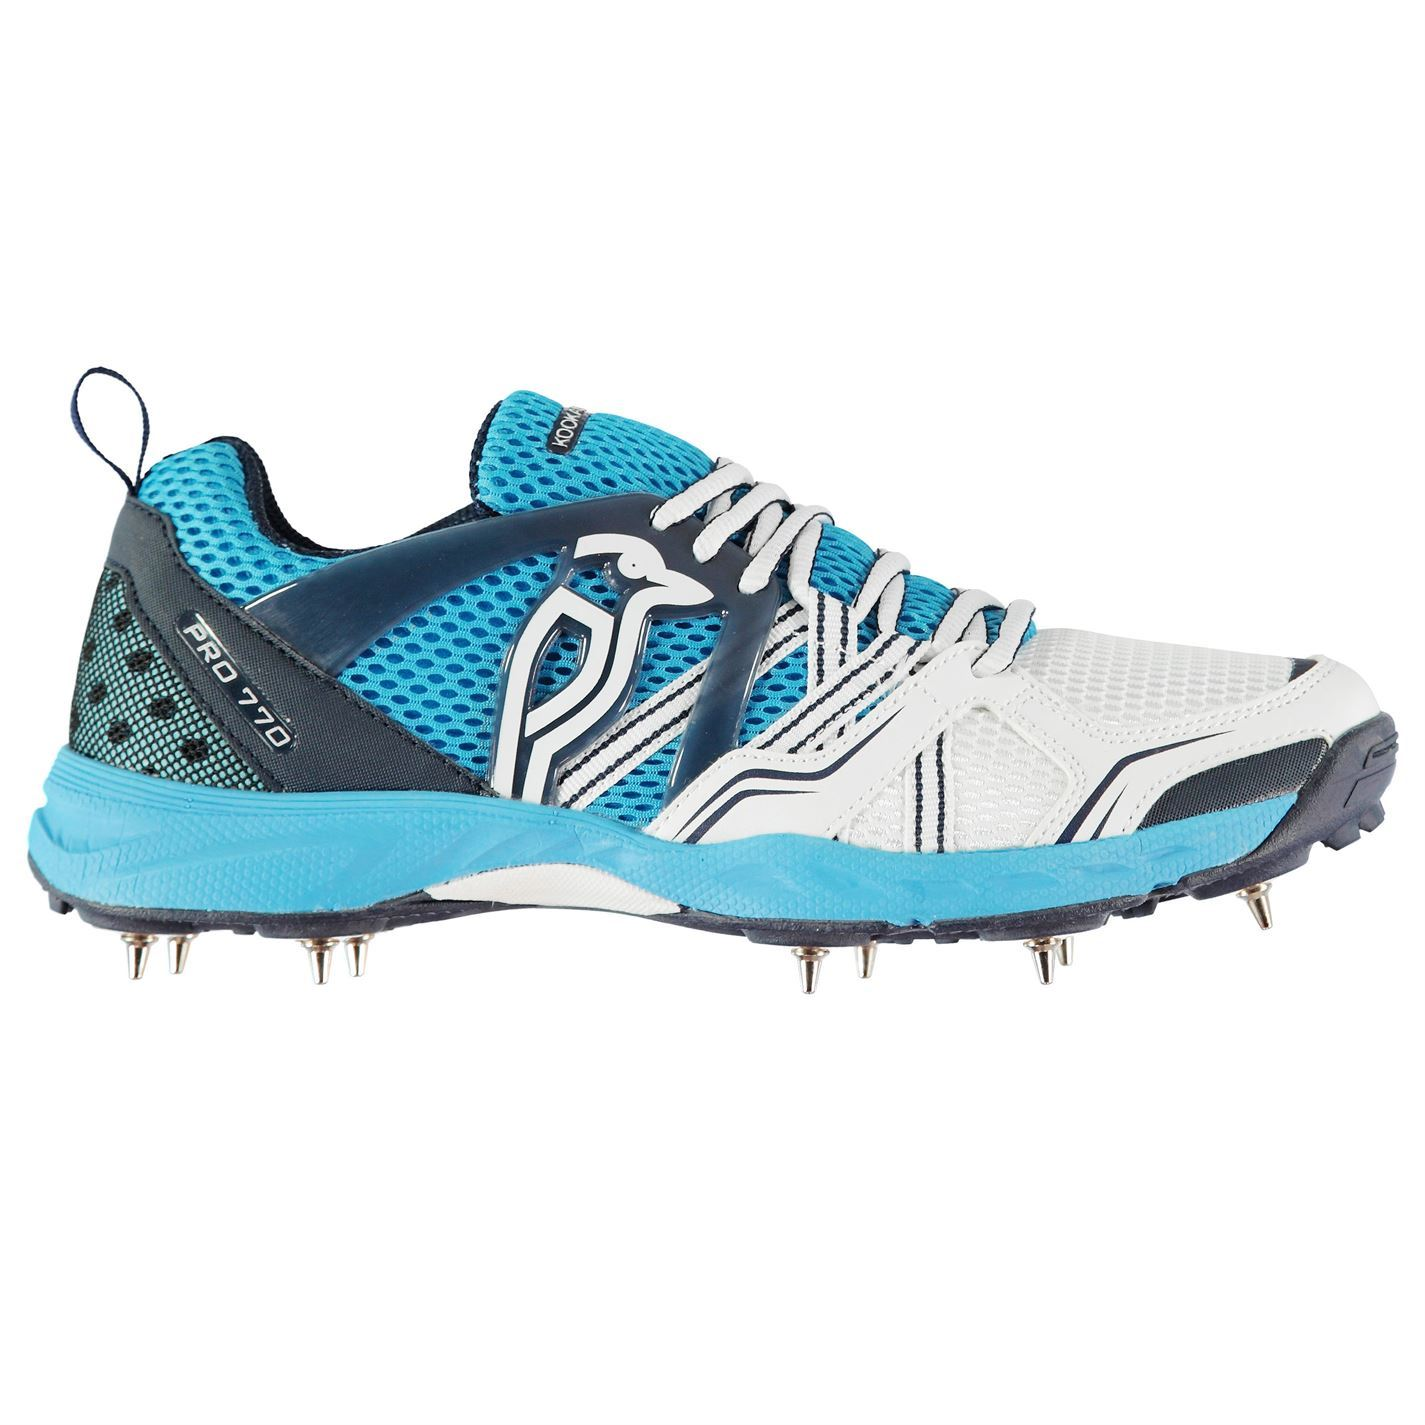 Pro Direct Cricket Shoes Running